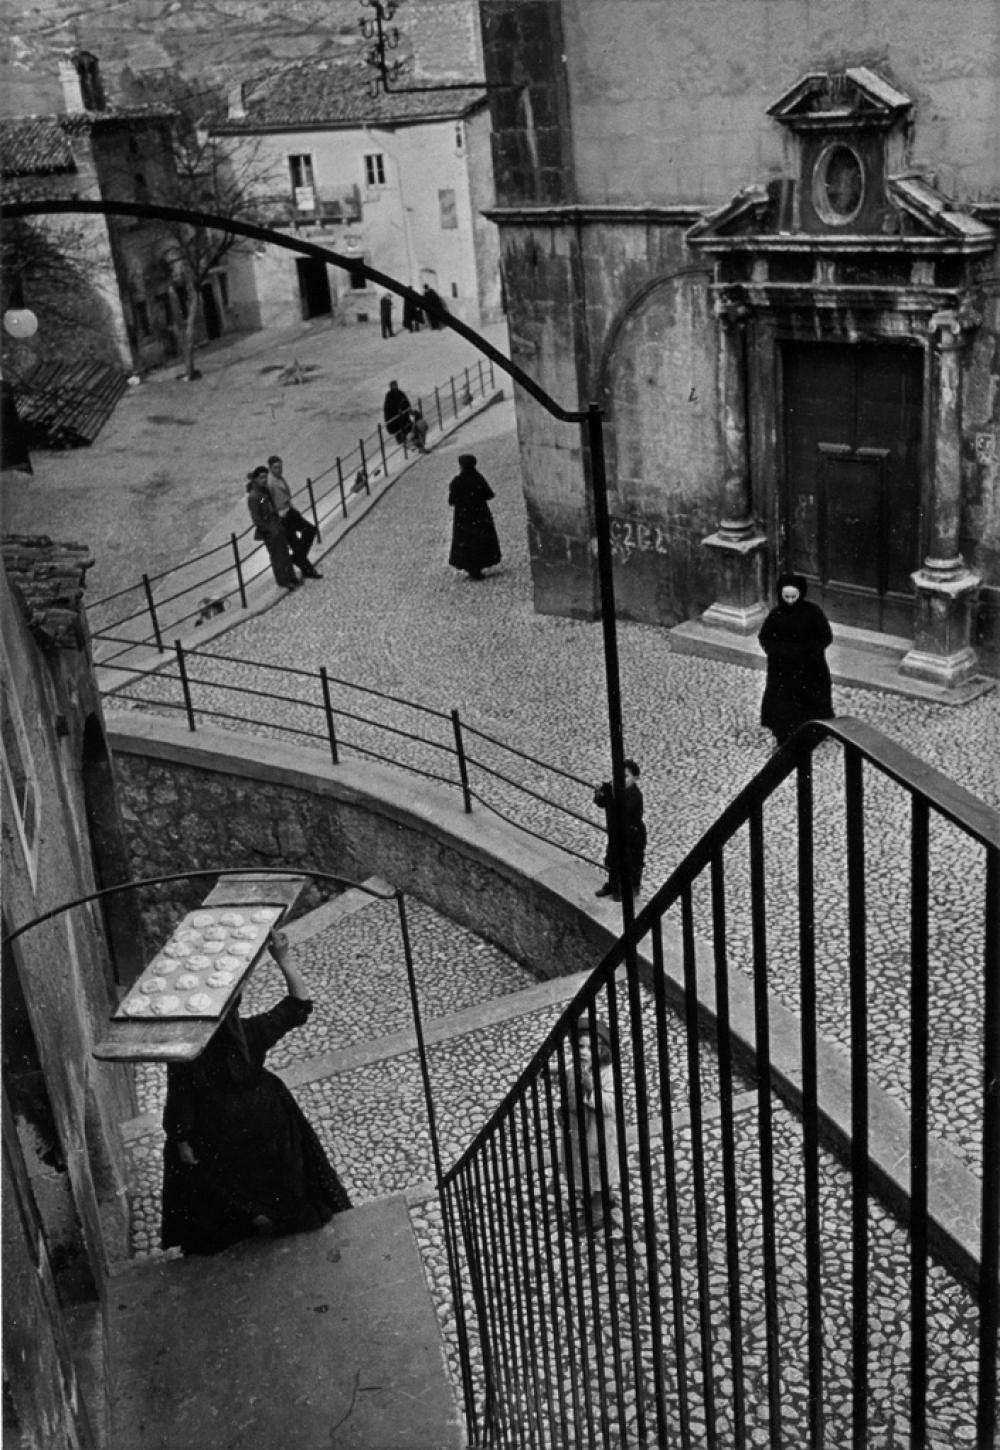 HENRI CARTIER-BRESSON (1908-2004) Christmas in Scanno, Italy.